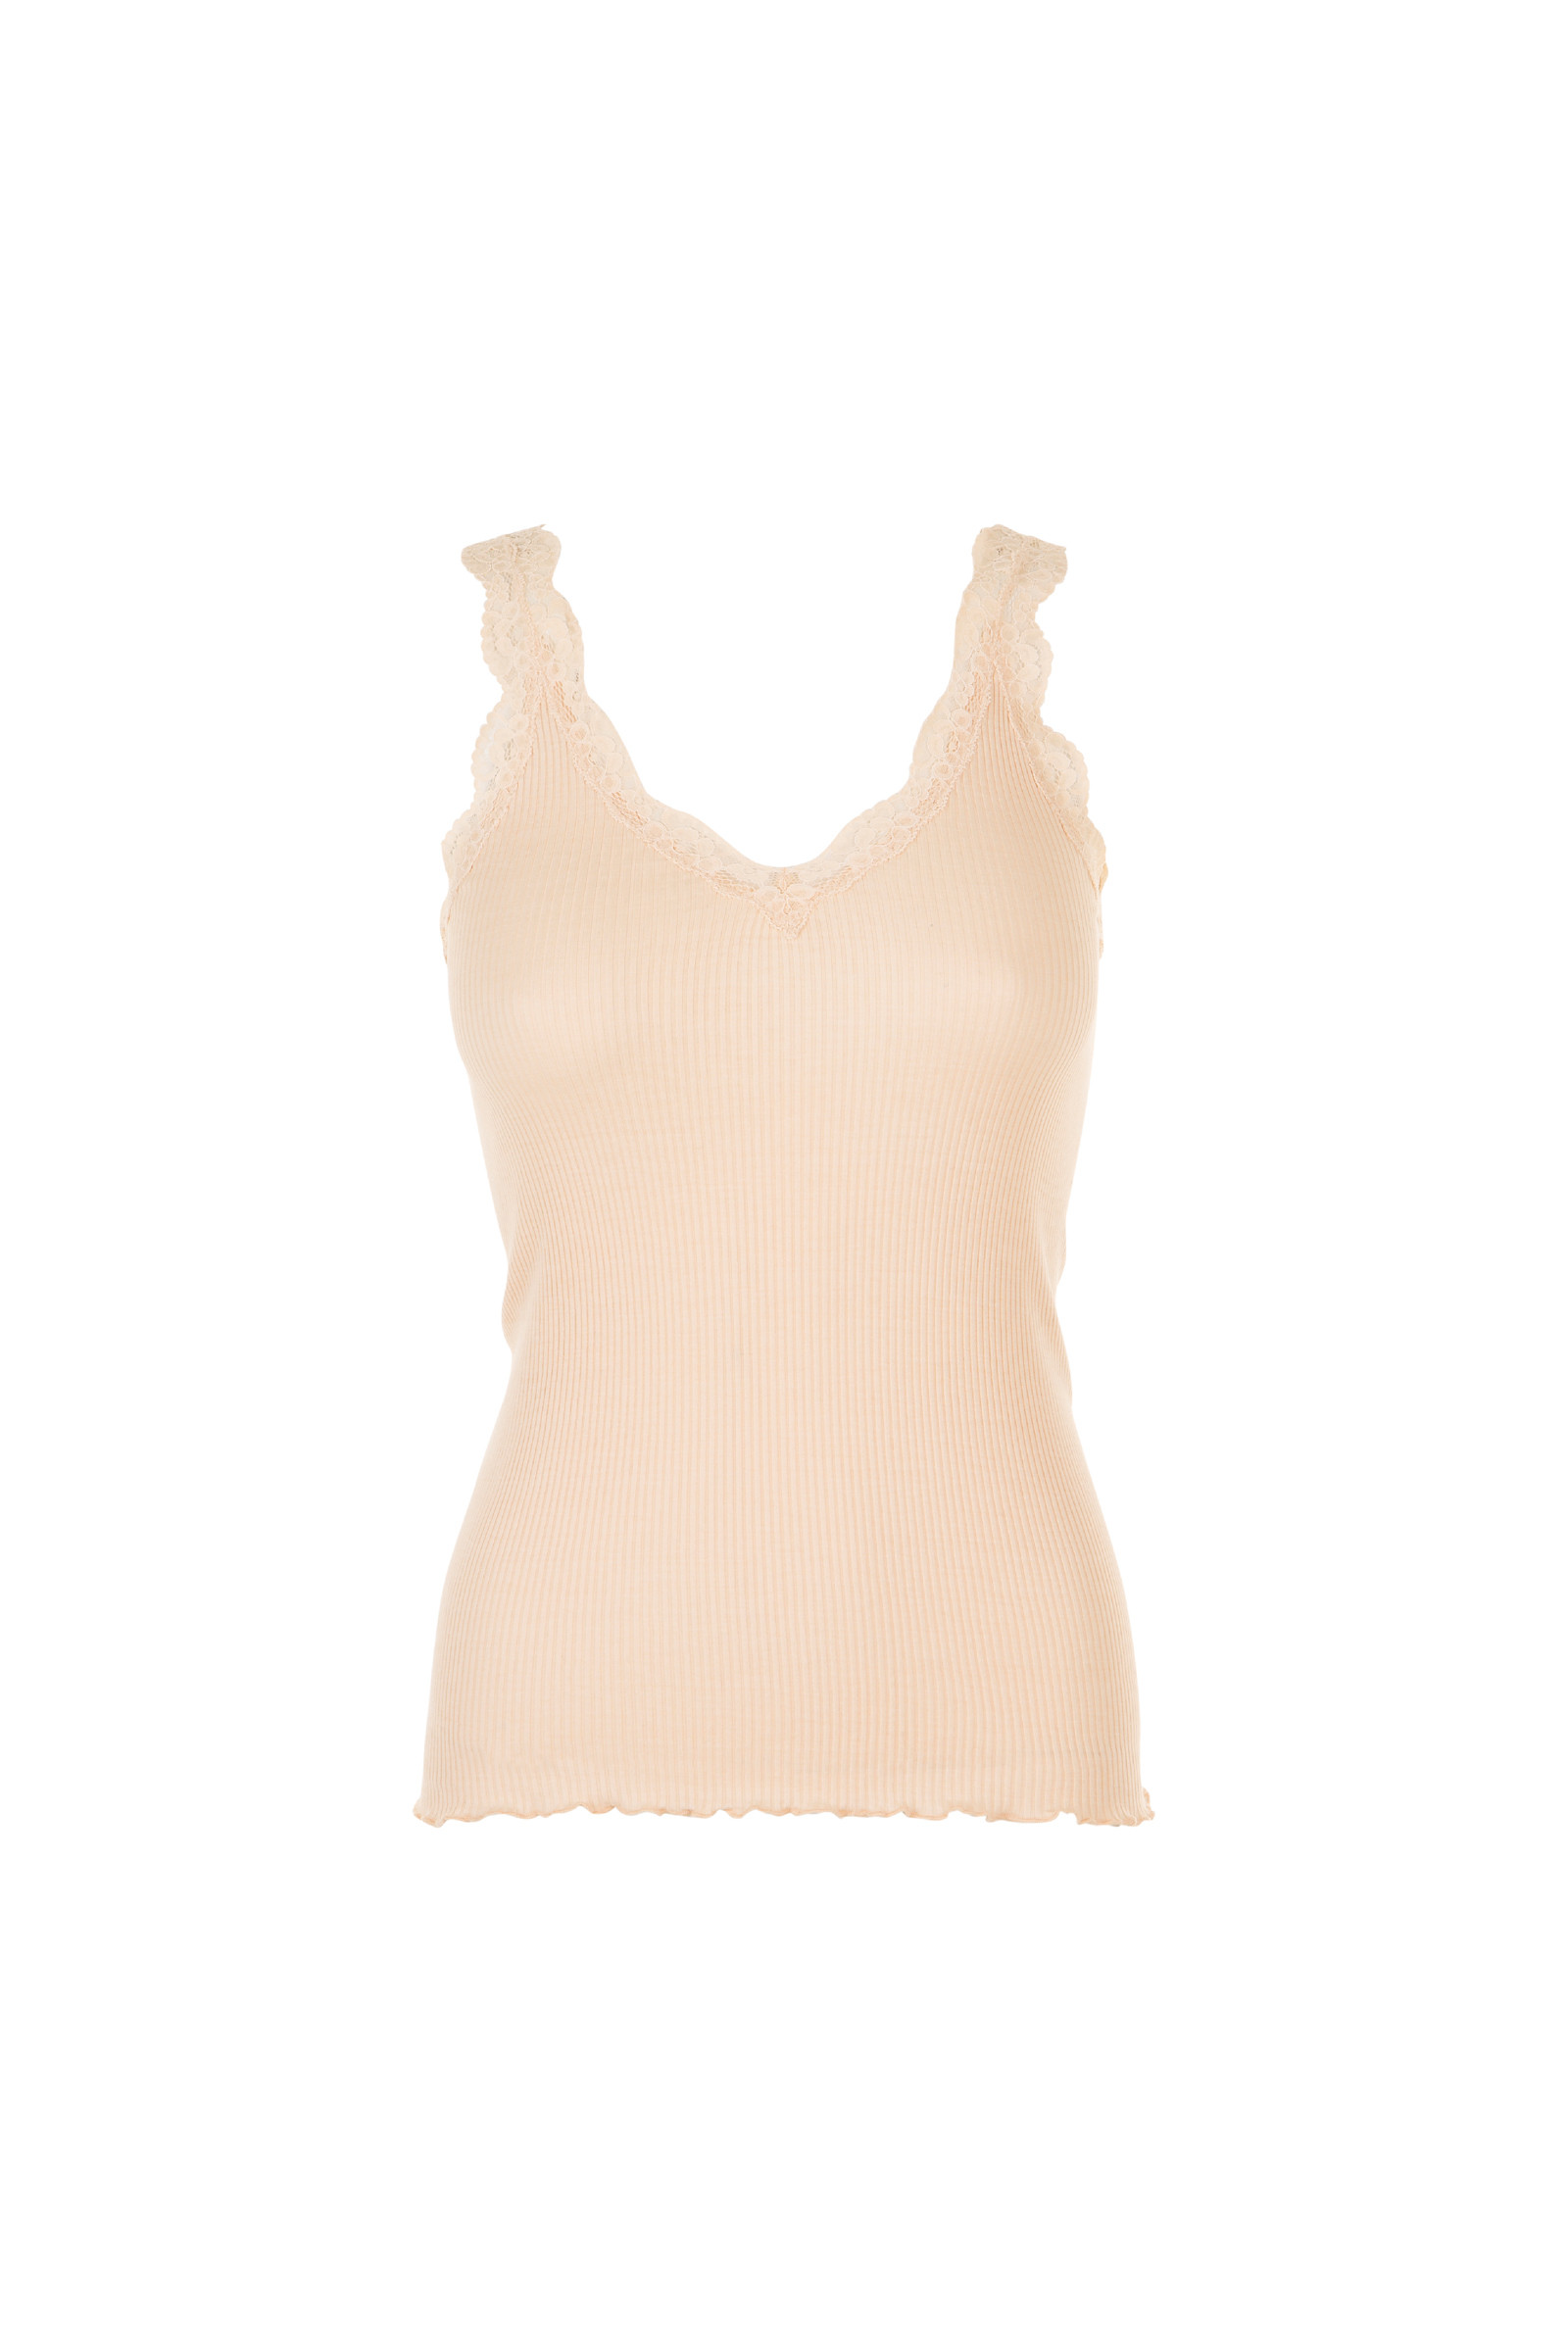 SLEEVELESS TOP IN RIBBED KNIT AND LACE THEO NUTS